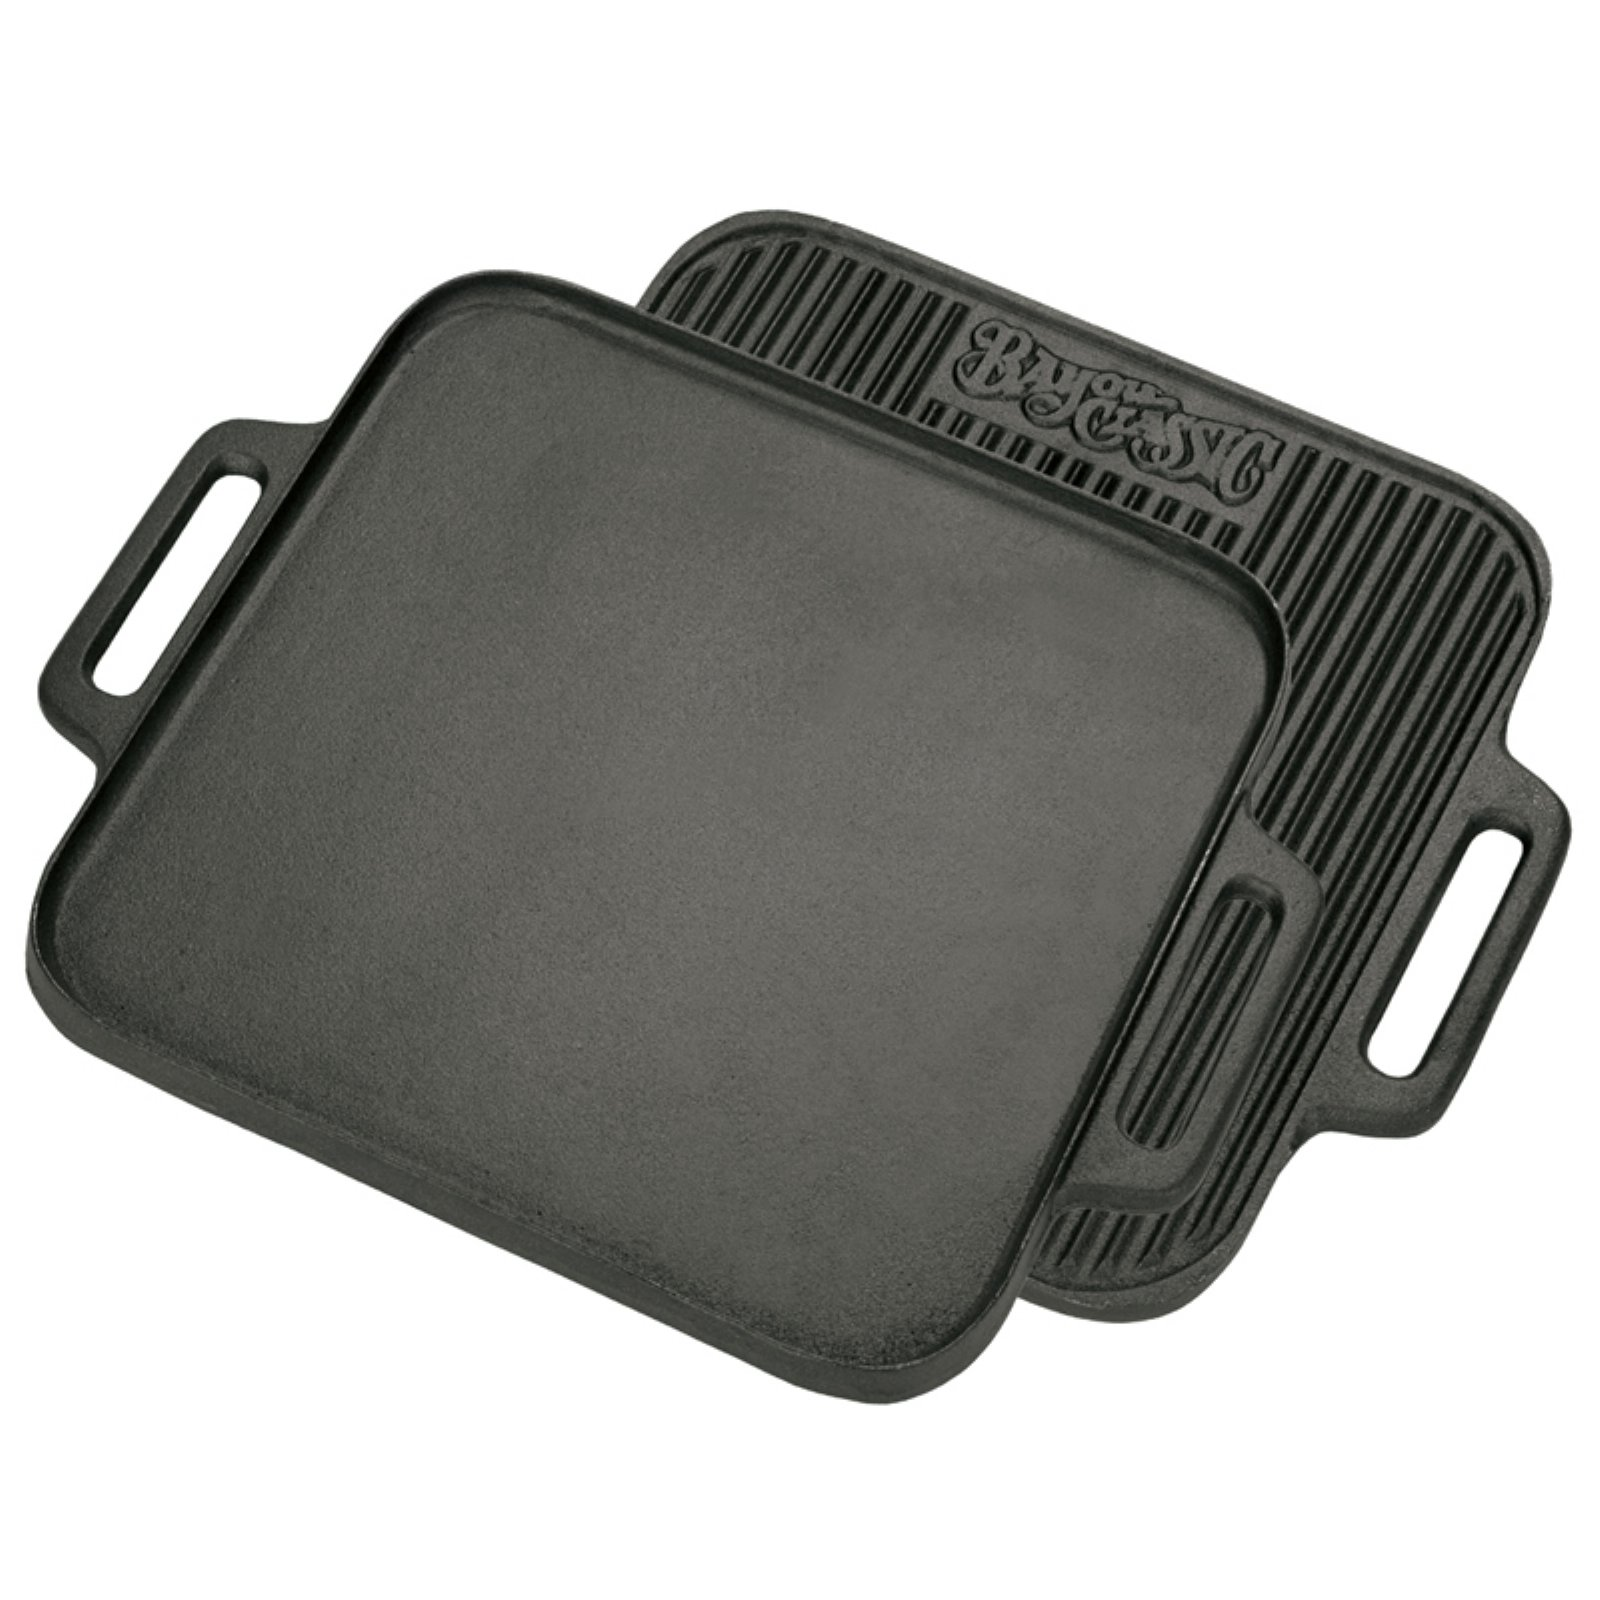 Bayou Classics Cast Iron Reversible Square Griddle